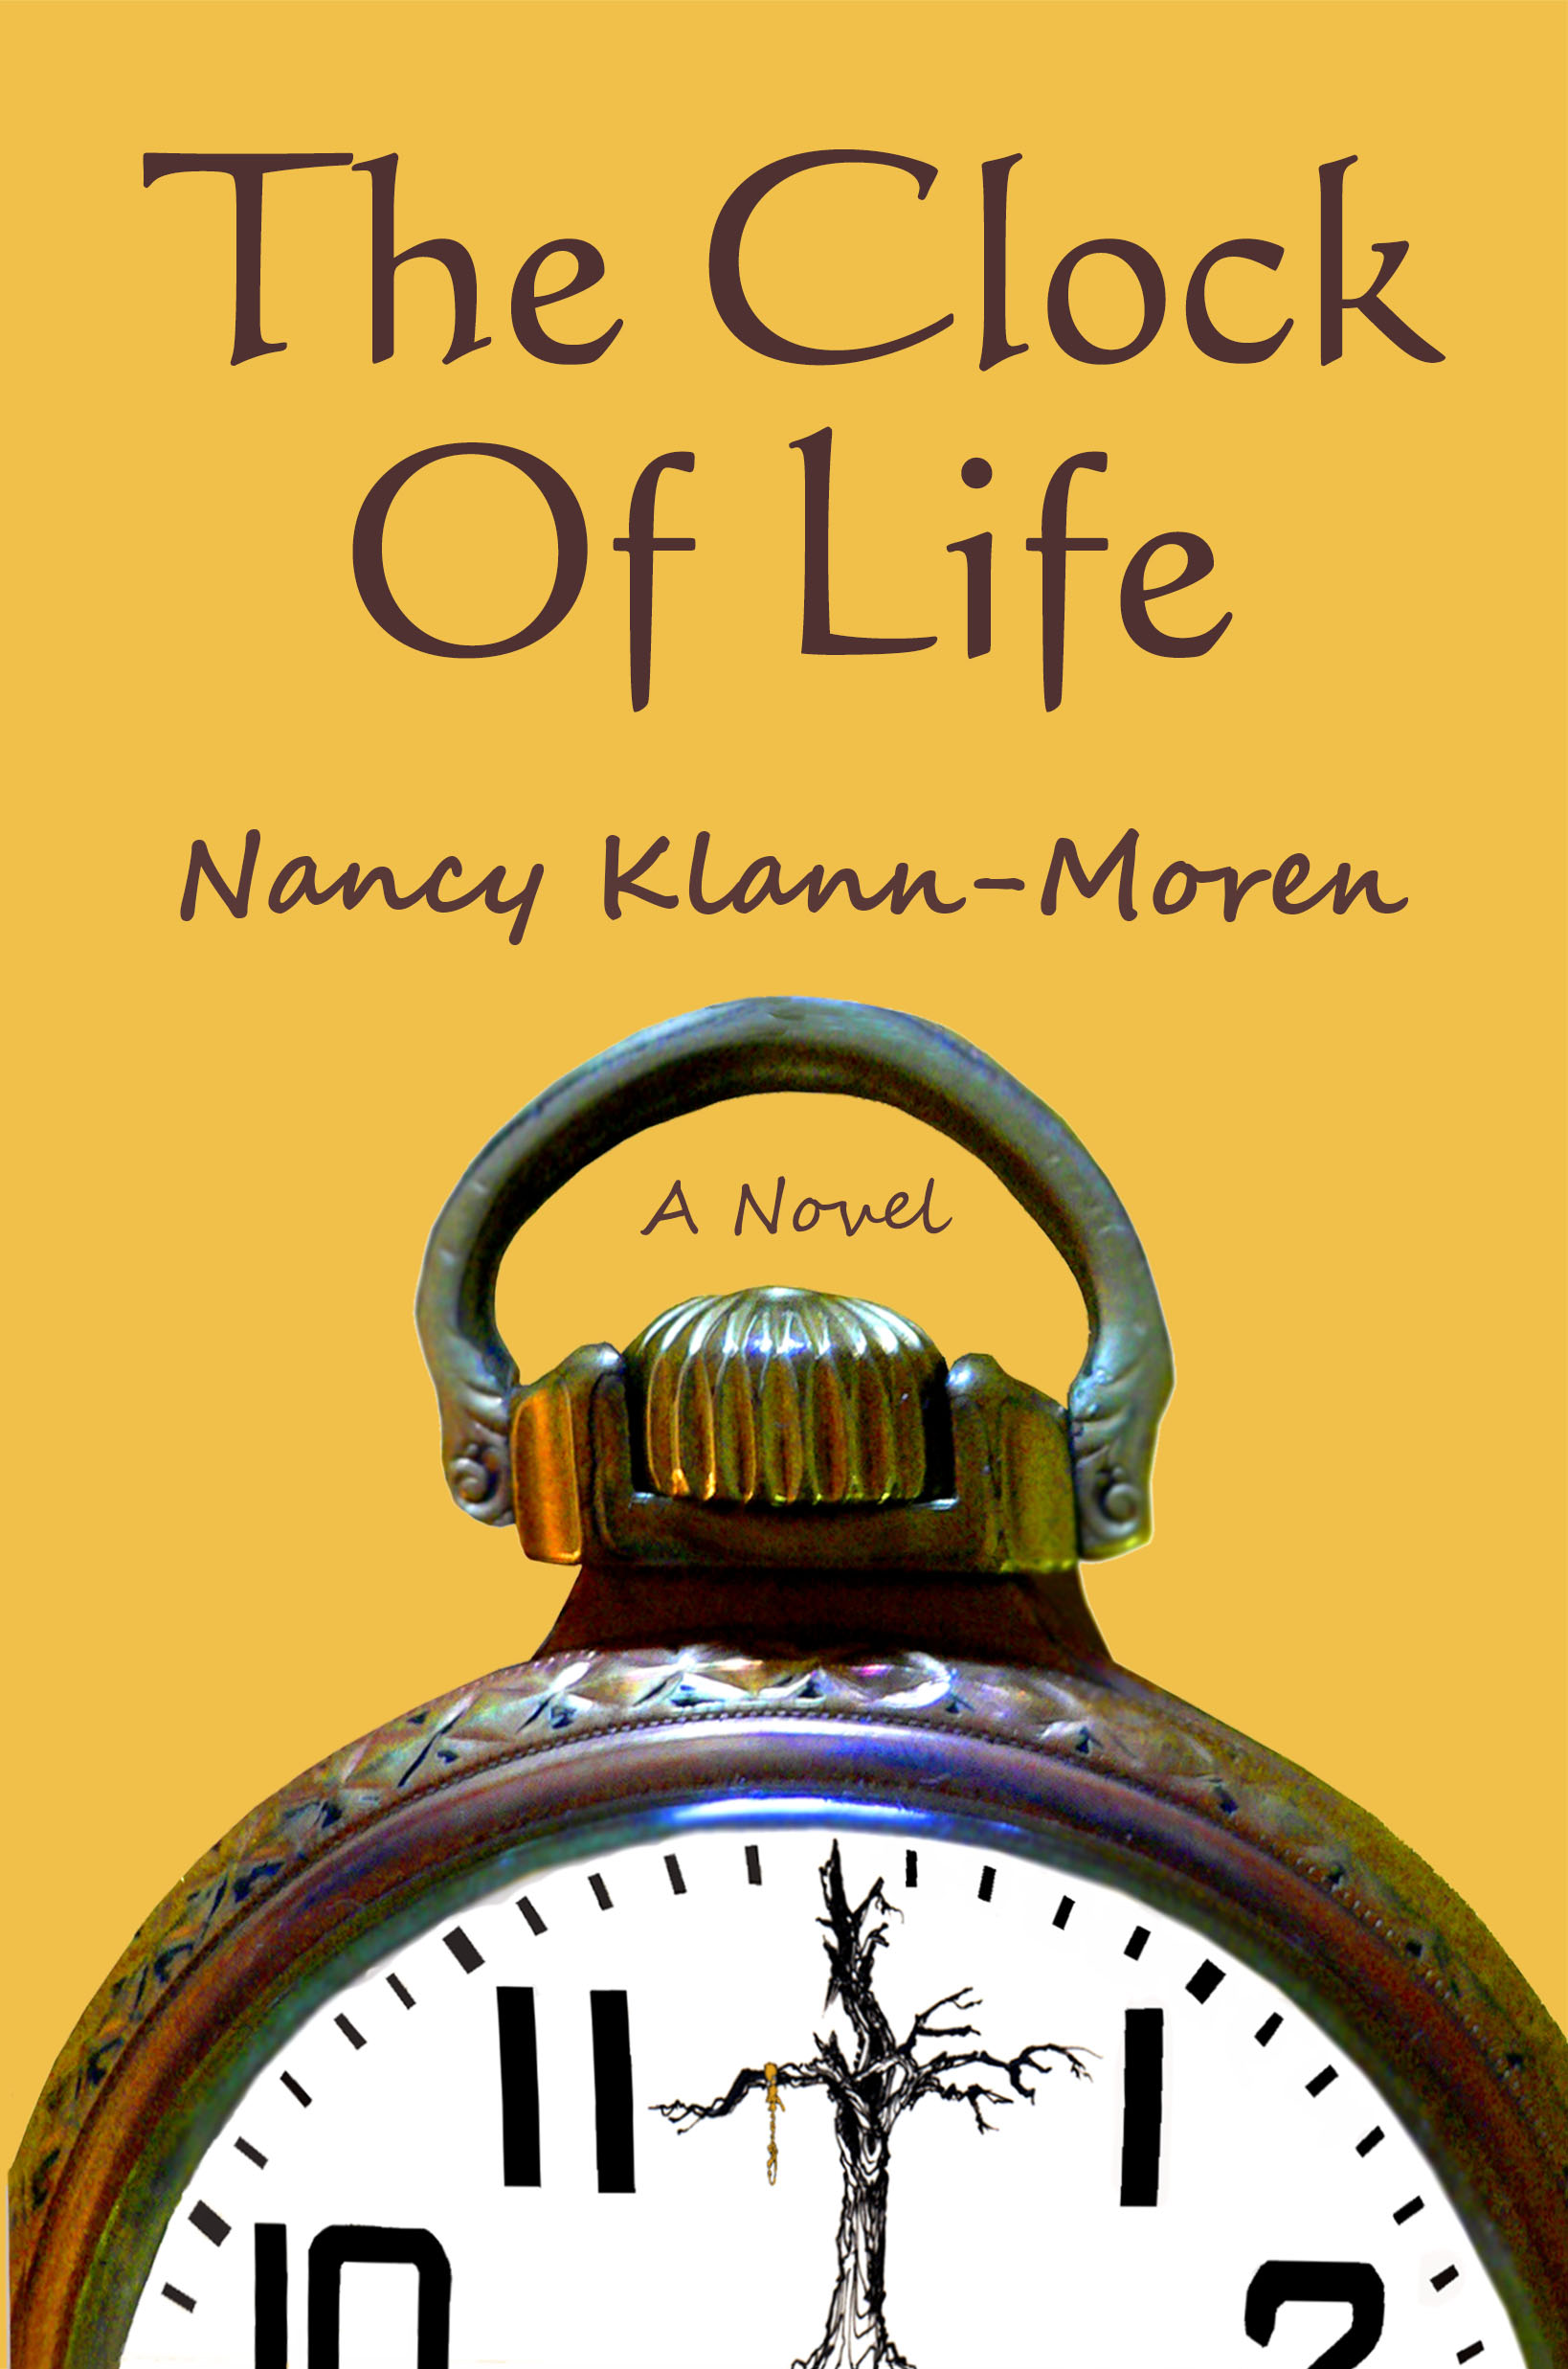 The-Clock-of-Life-Book-Jacket-front-Nov-2016